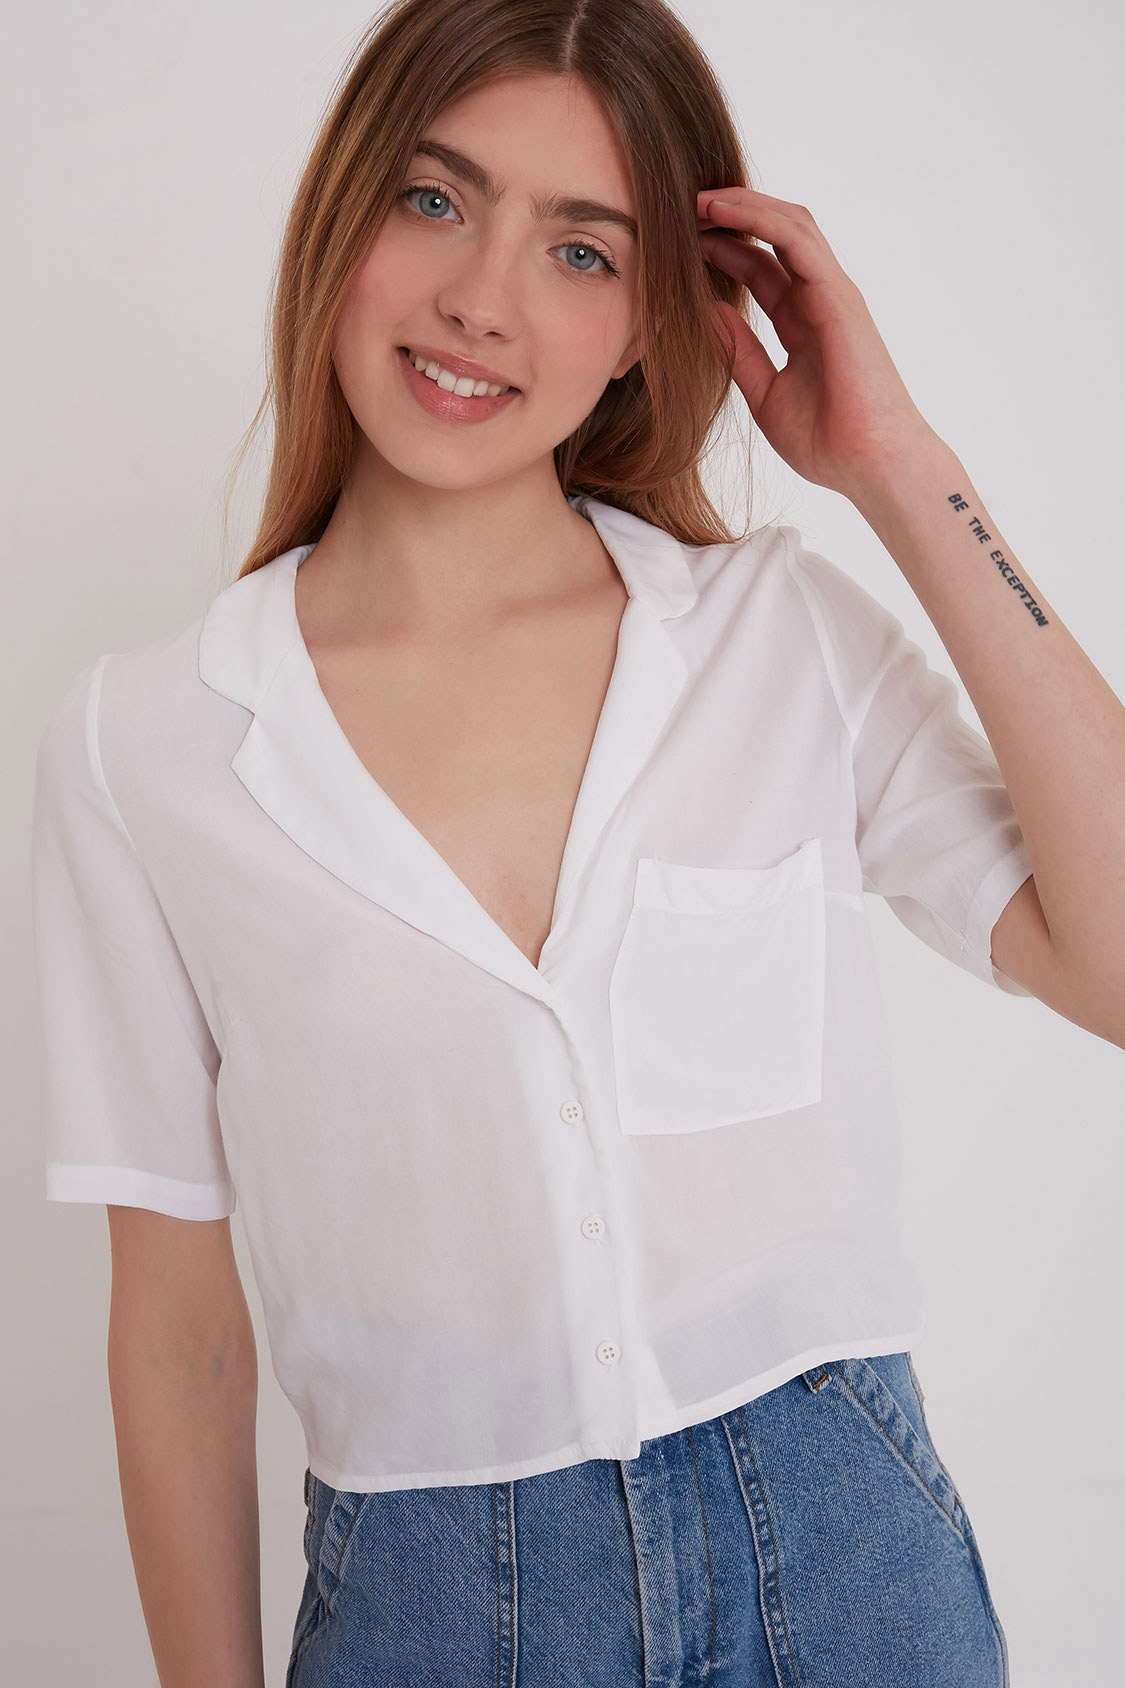 V-neck shirt with pocket